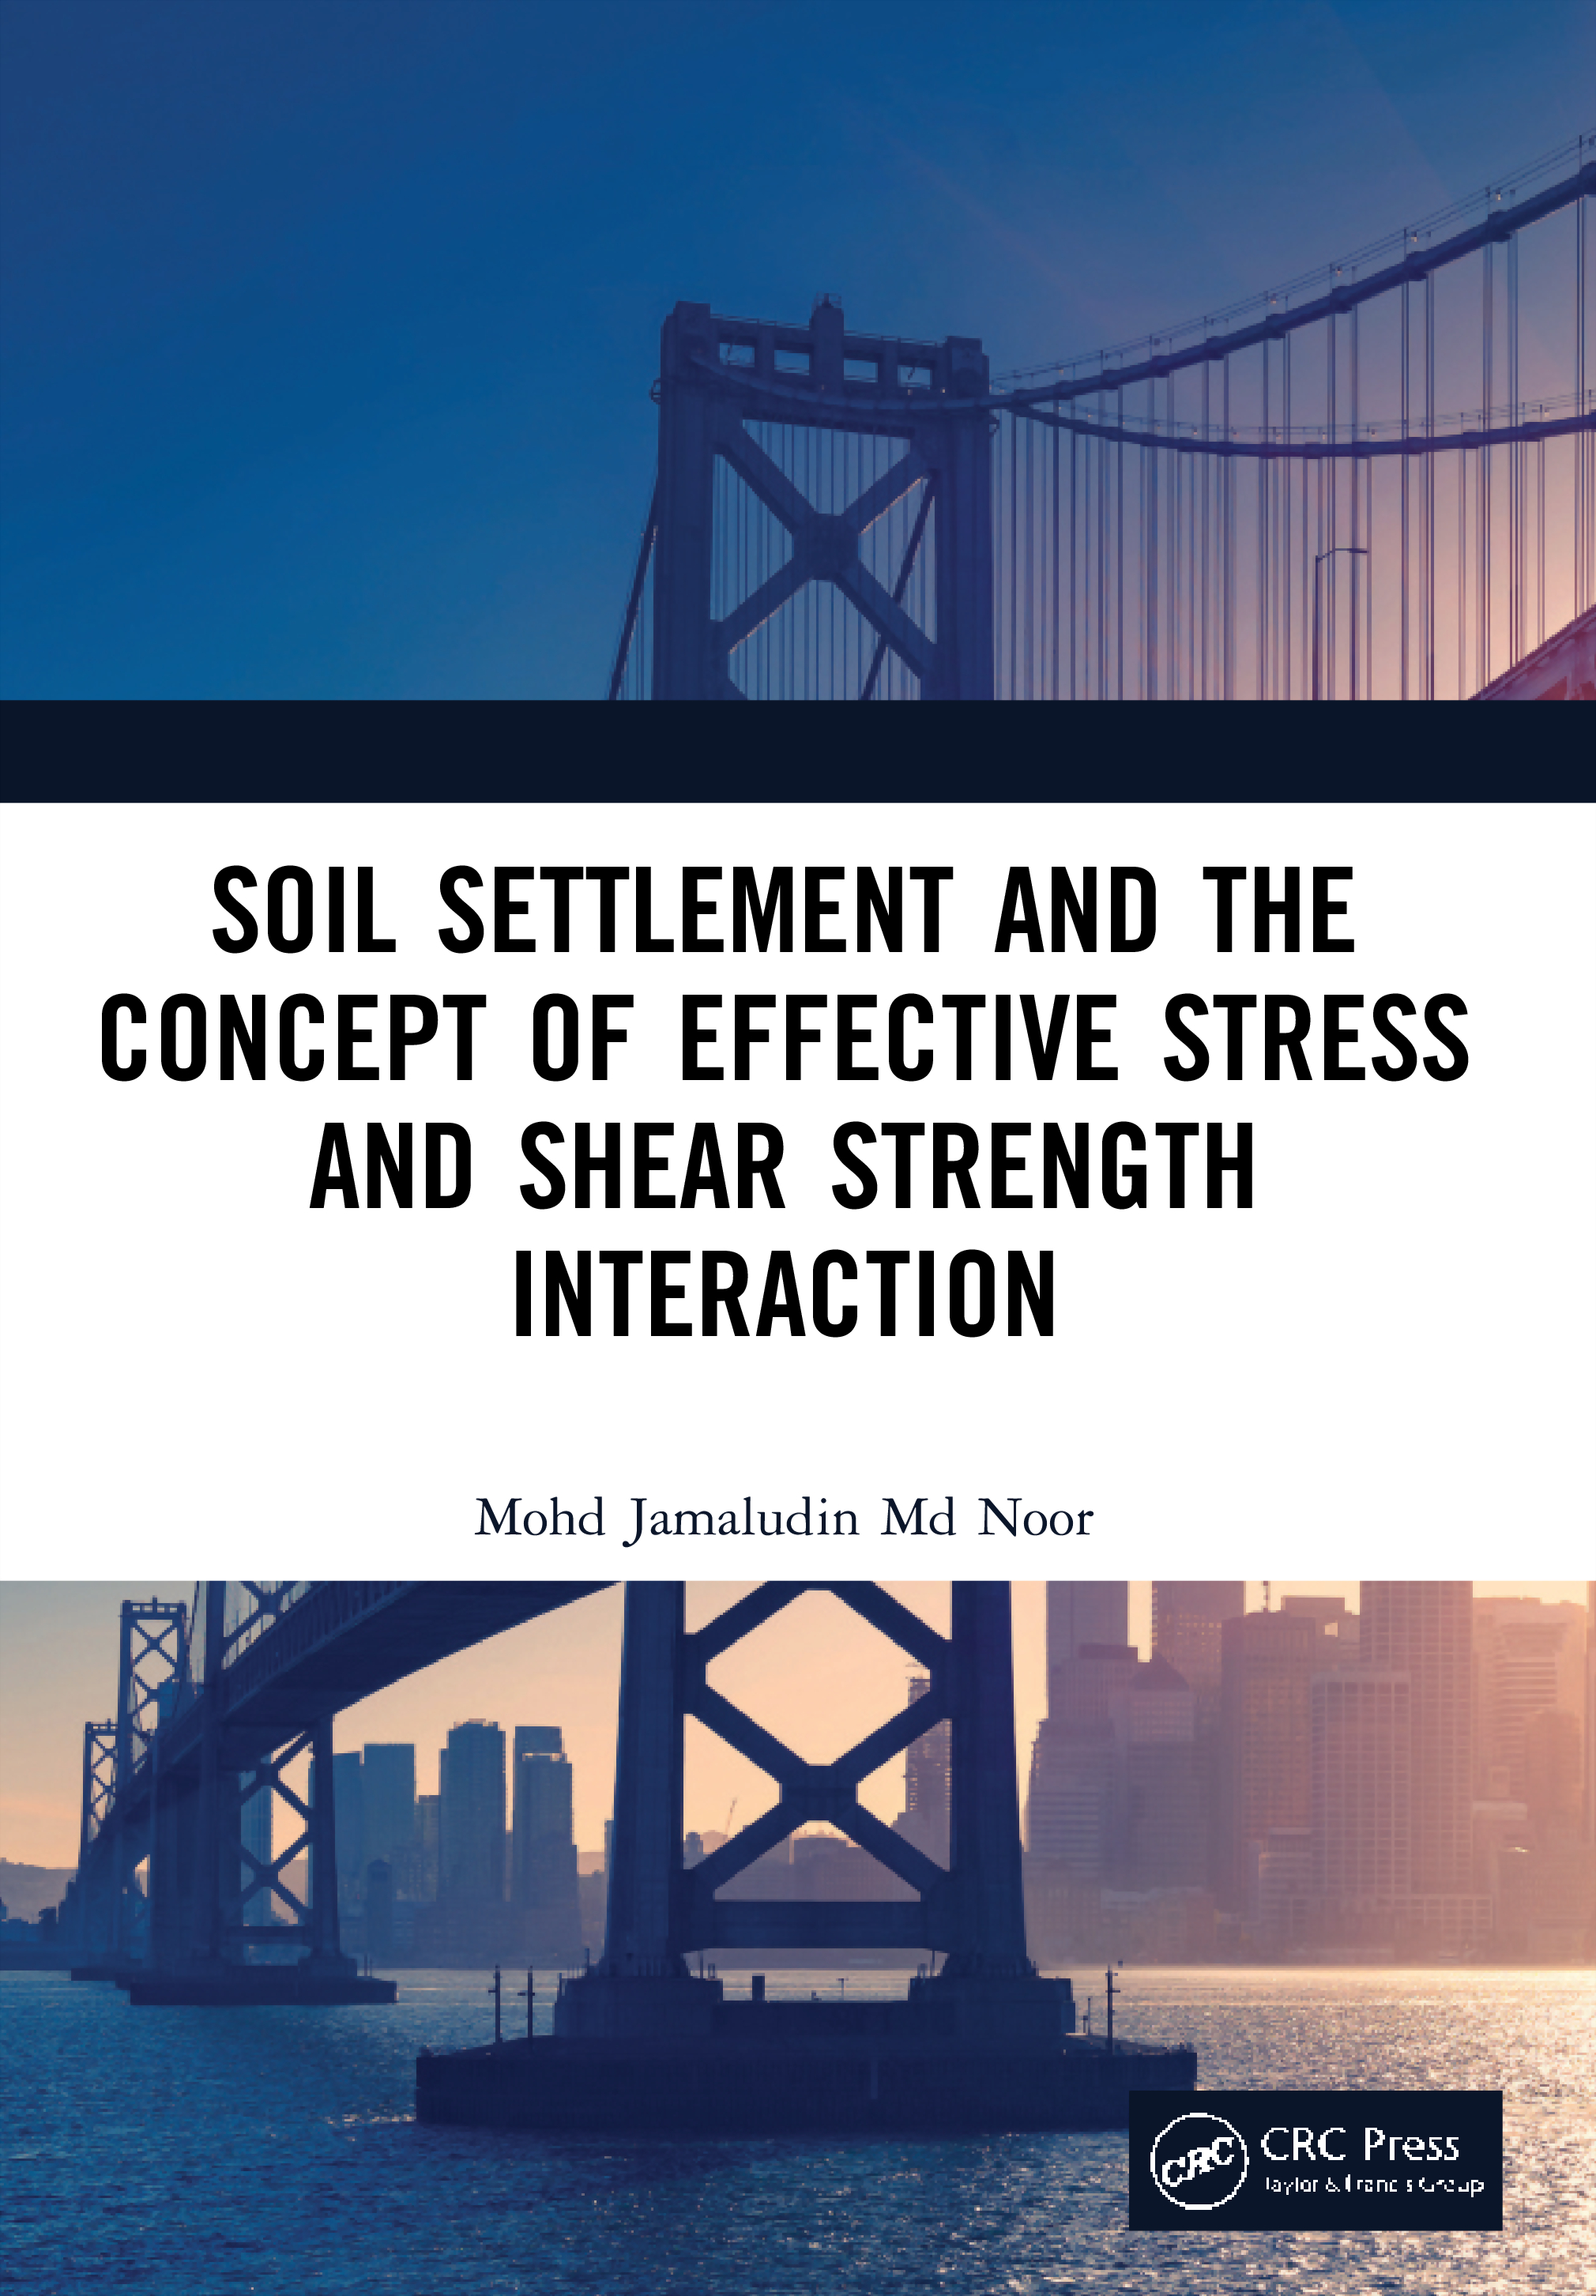 Soil Settlement and the Concept of Effective Stress and Shear Strength Interaction